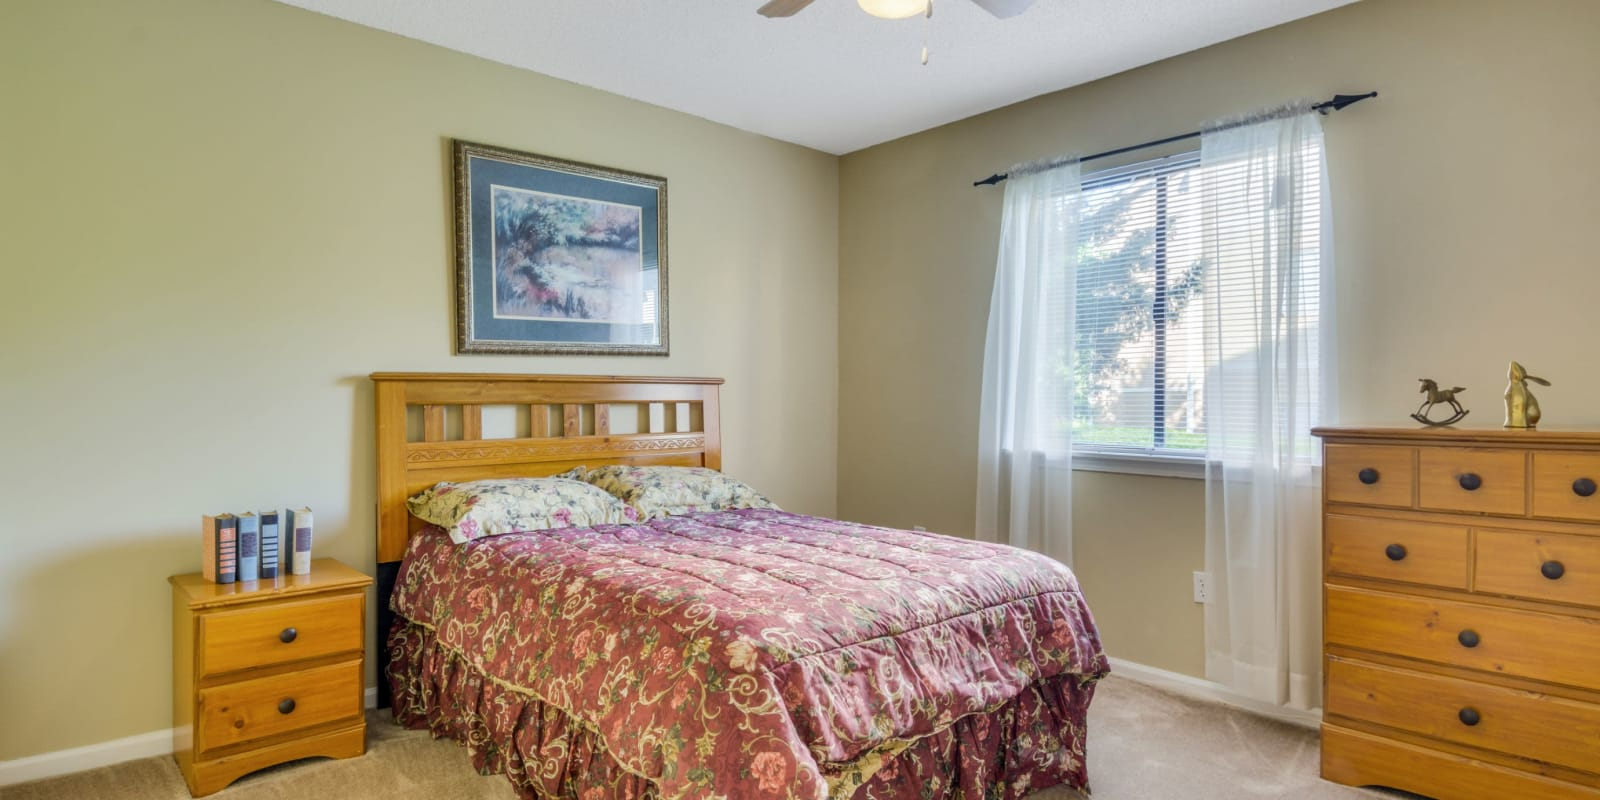 Spacious bedroom with a large window and plush carpeting at Woodbrook Apartment Homes in Monroe, North Carolina